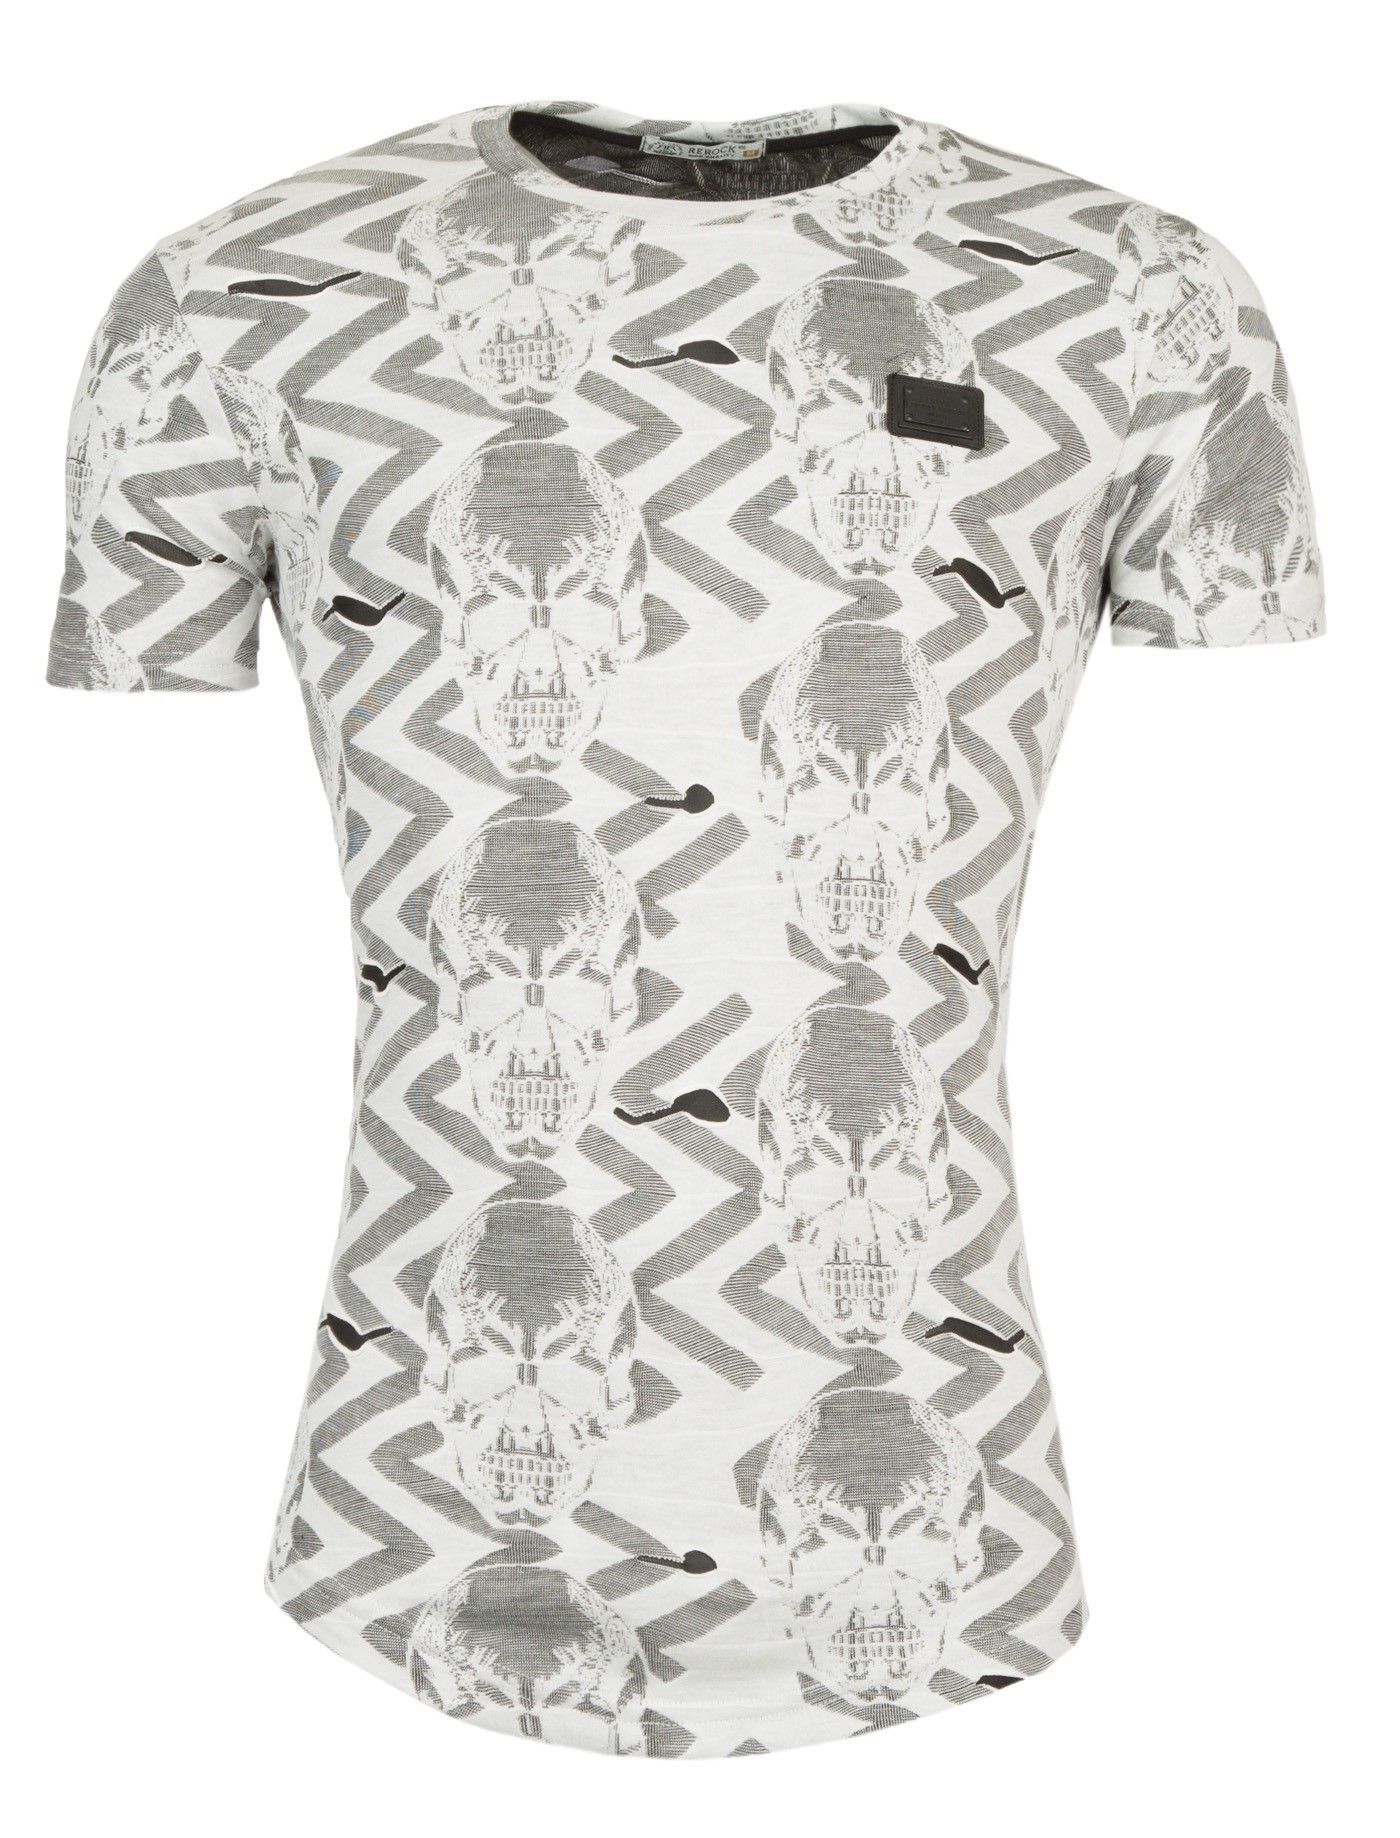 ffa8152259672 Tee shirt homme col rond pas cher et stylé - Best Style